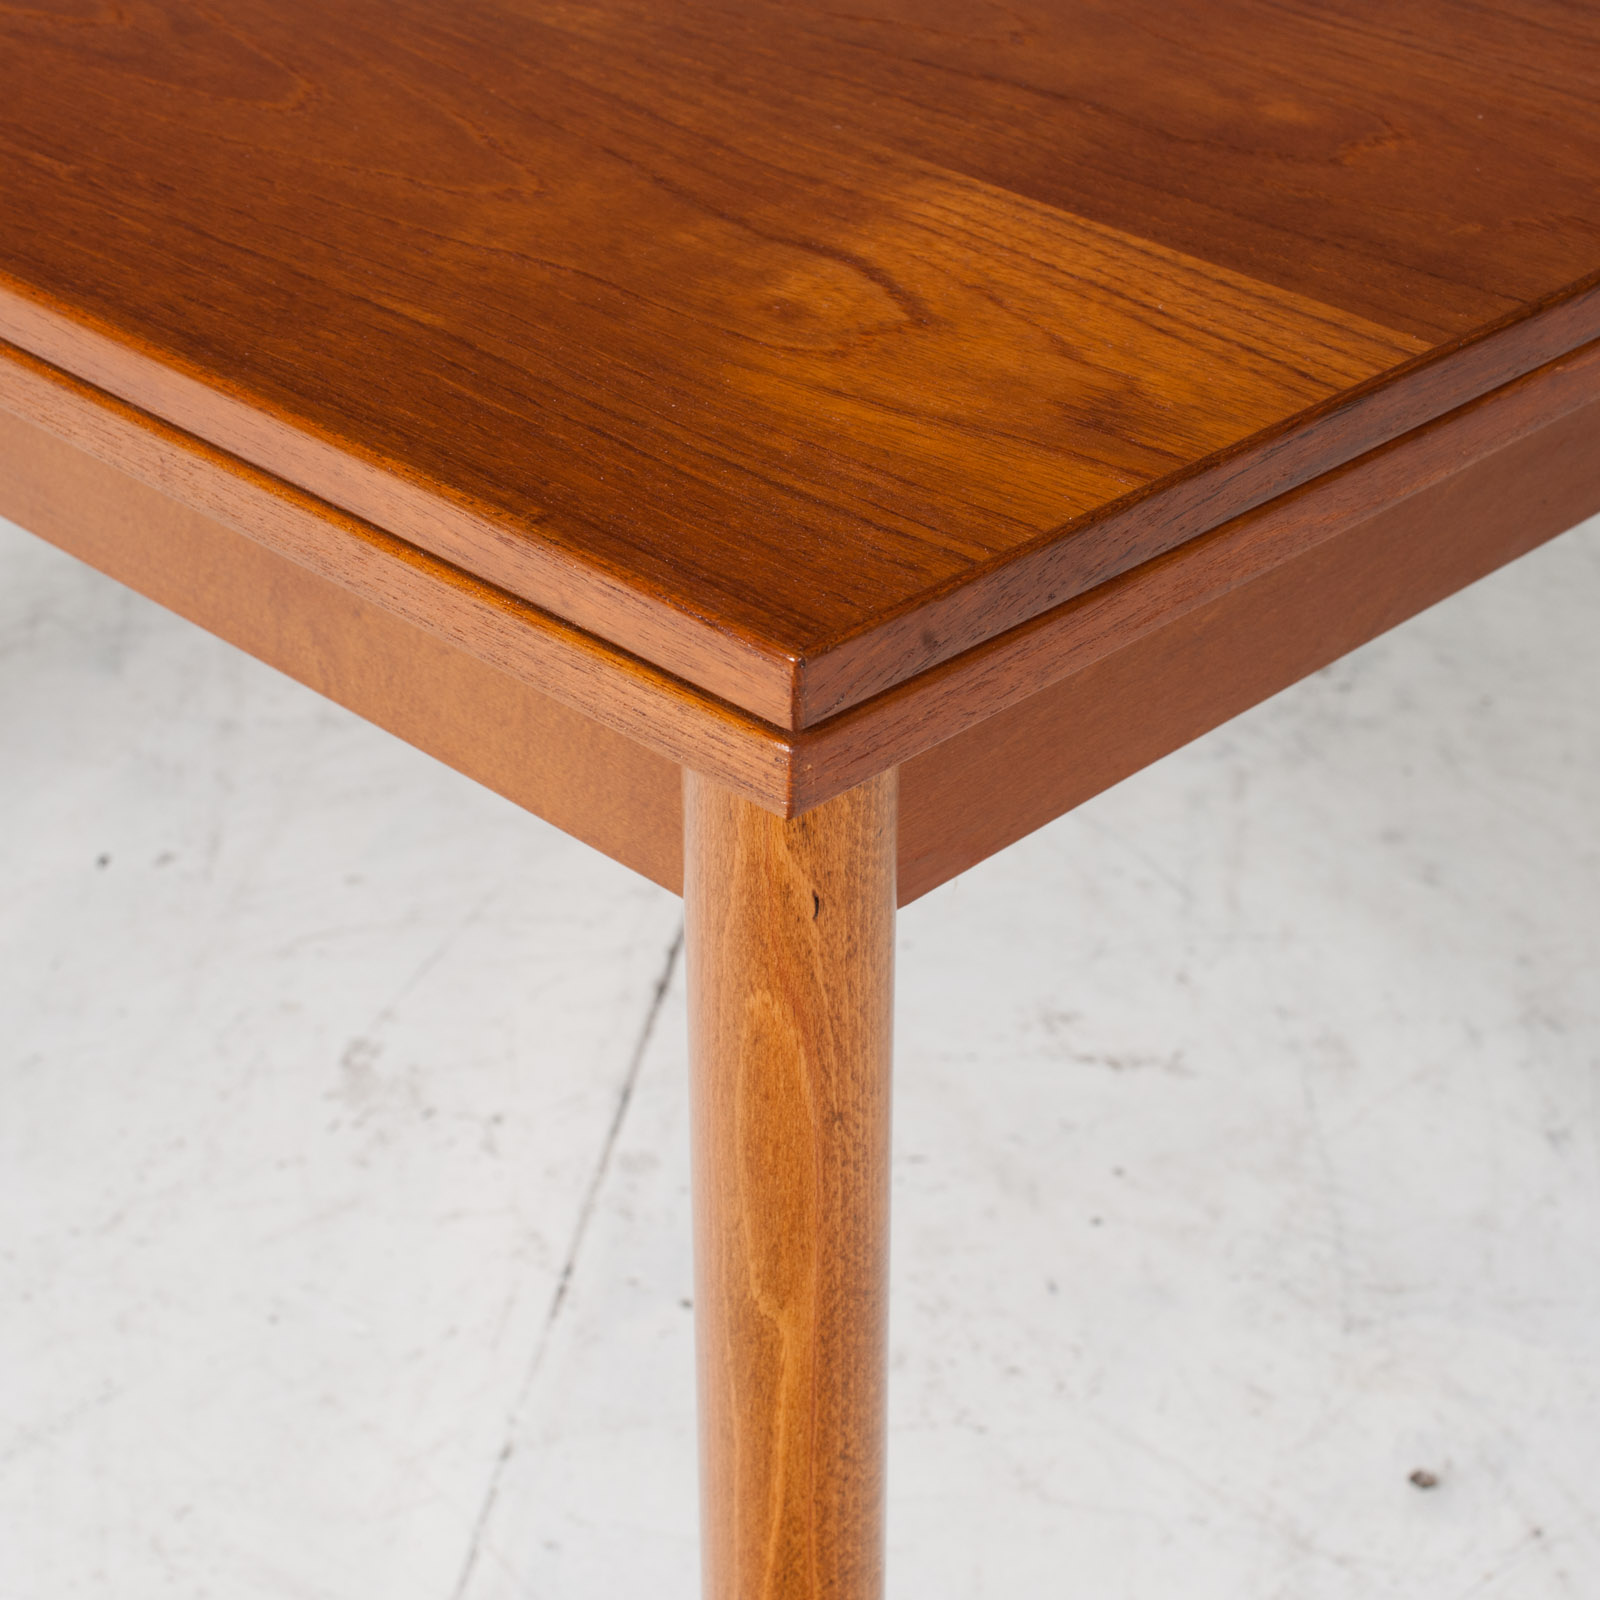 Rectangular Dining Table In Teak With Concealed Extentions 1960s Denmark5